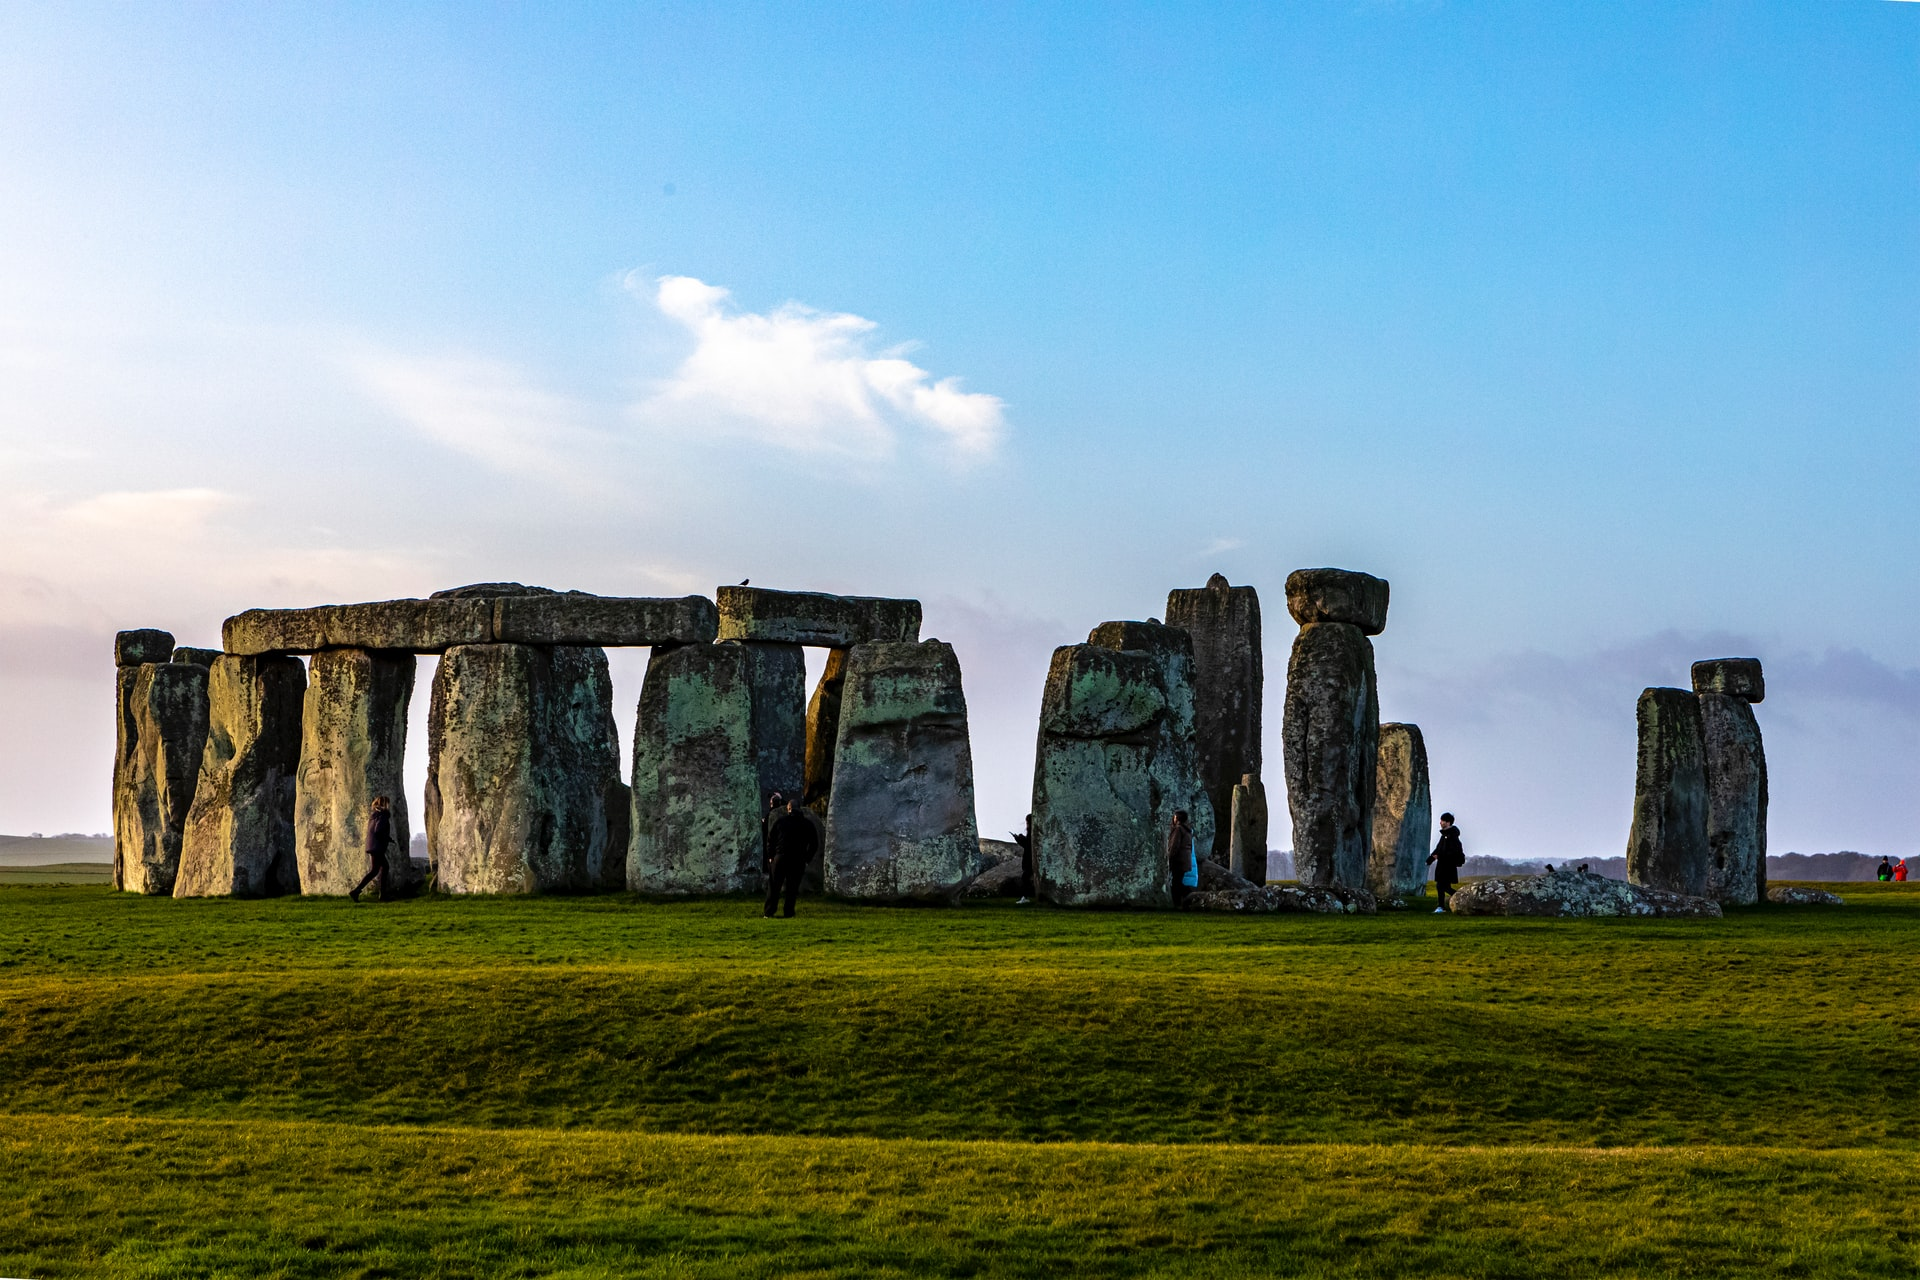 Side view of stonehenge